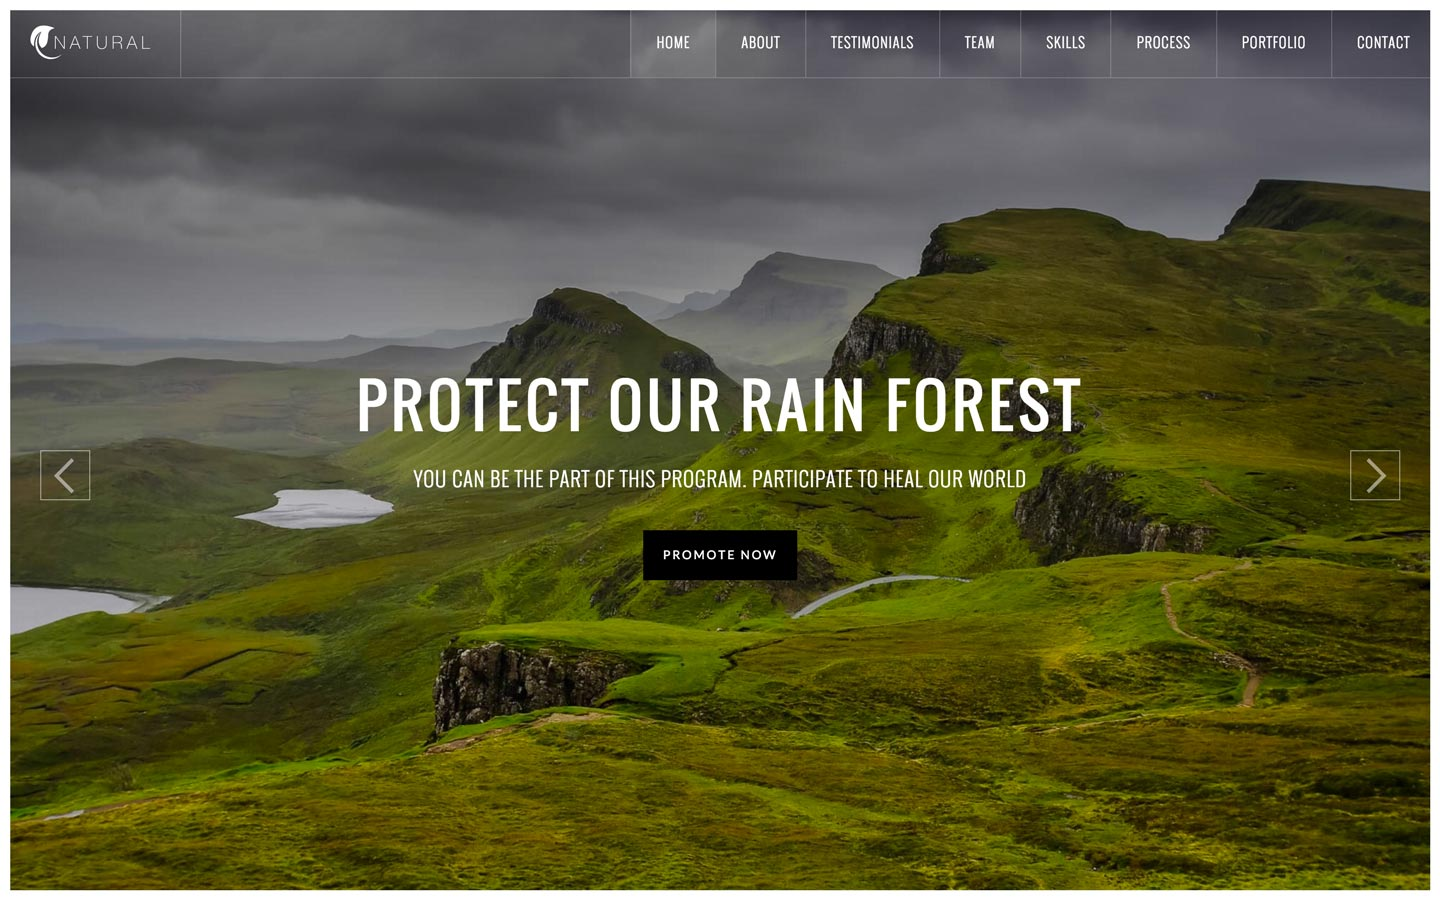 Natural – Charity Website Template